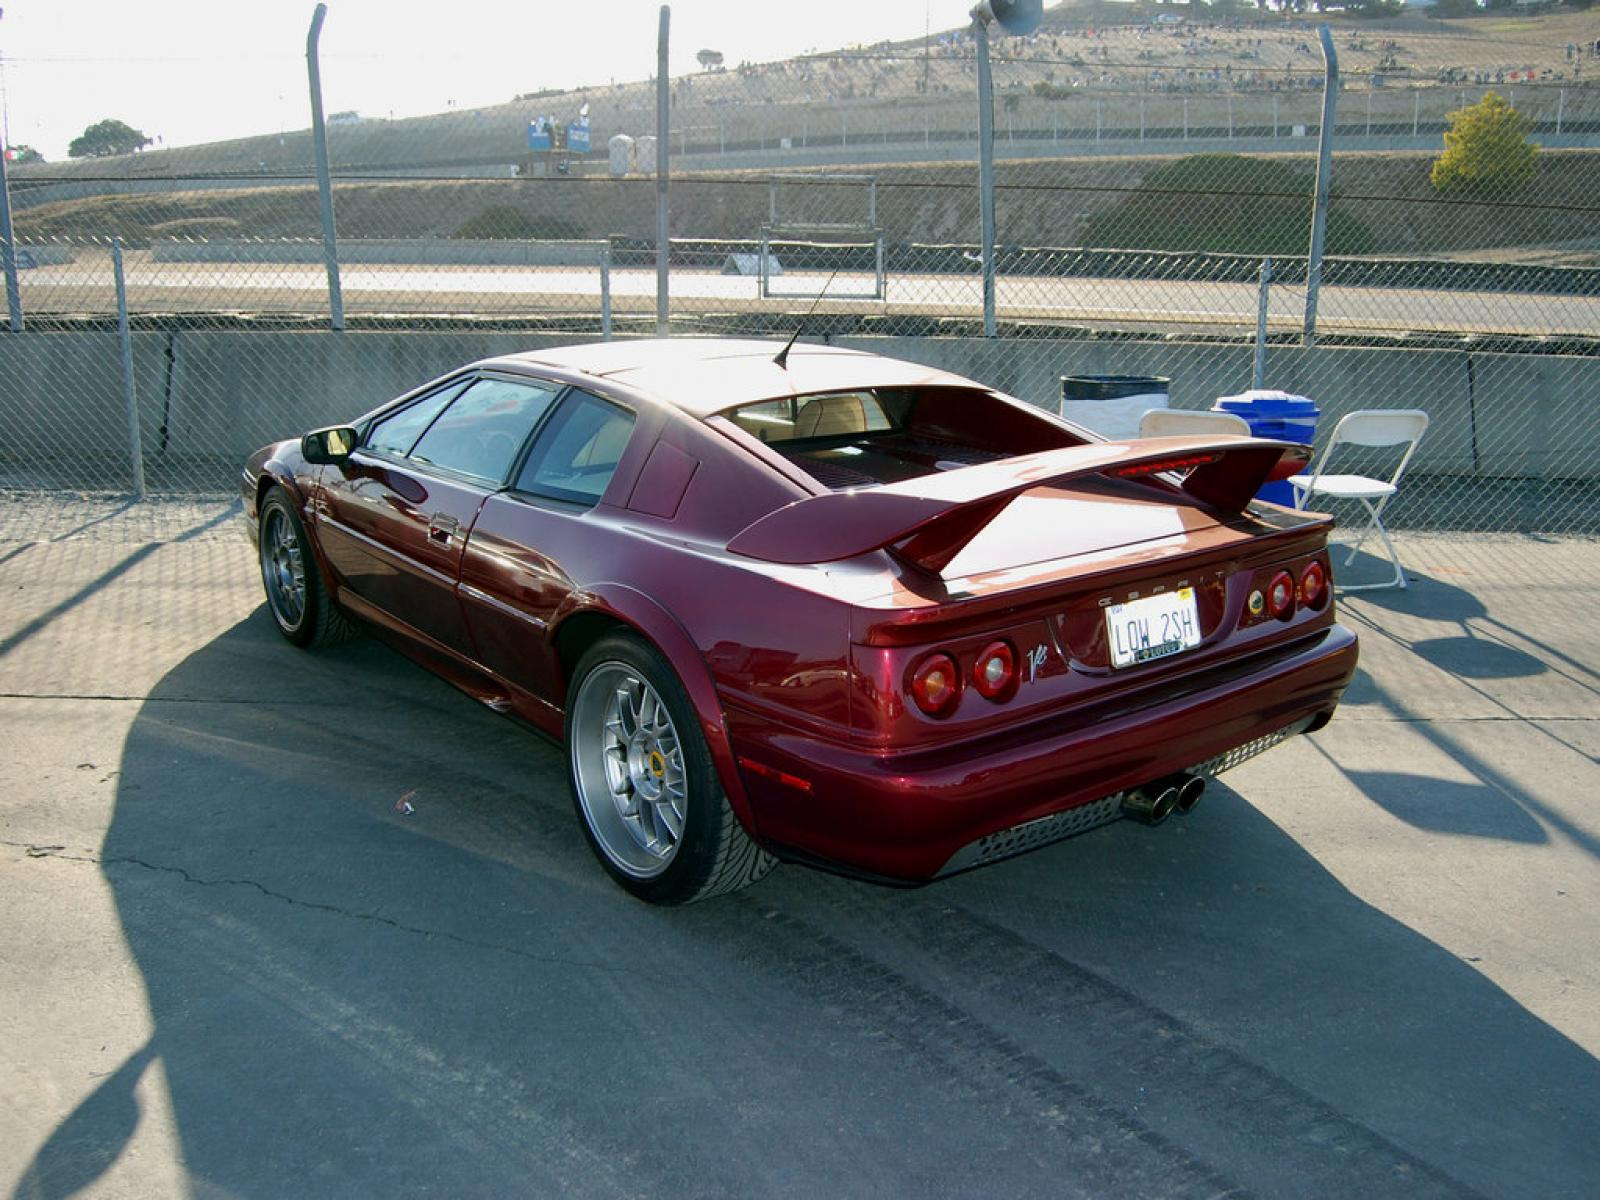 2003 lotus esprit information and photos zombiedrive 800 1024 1280 1600 origin 2003 lotus esprit vanachro Gallery